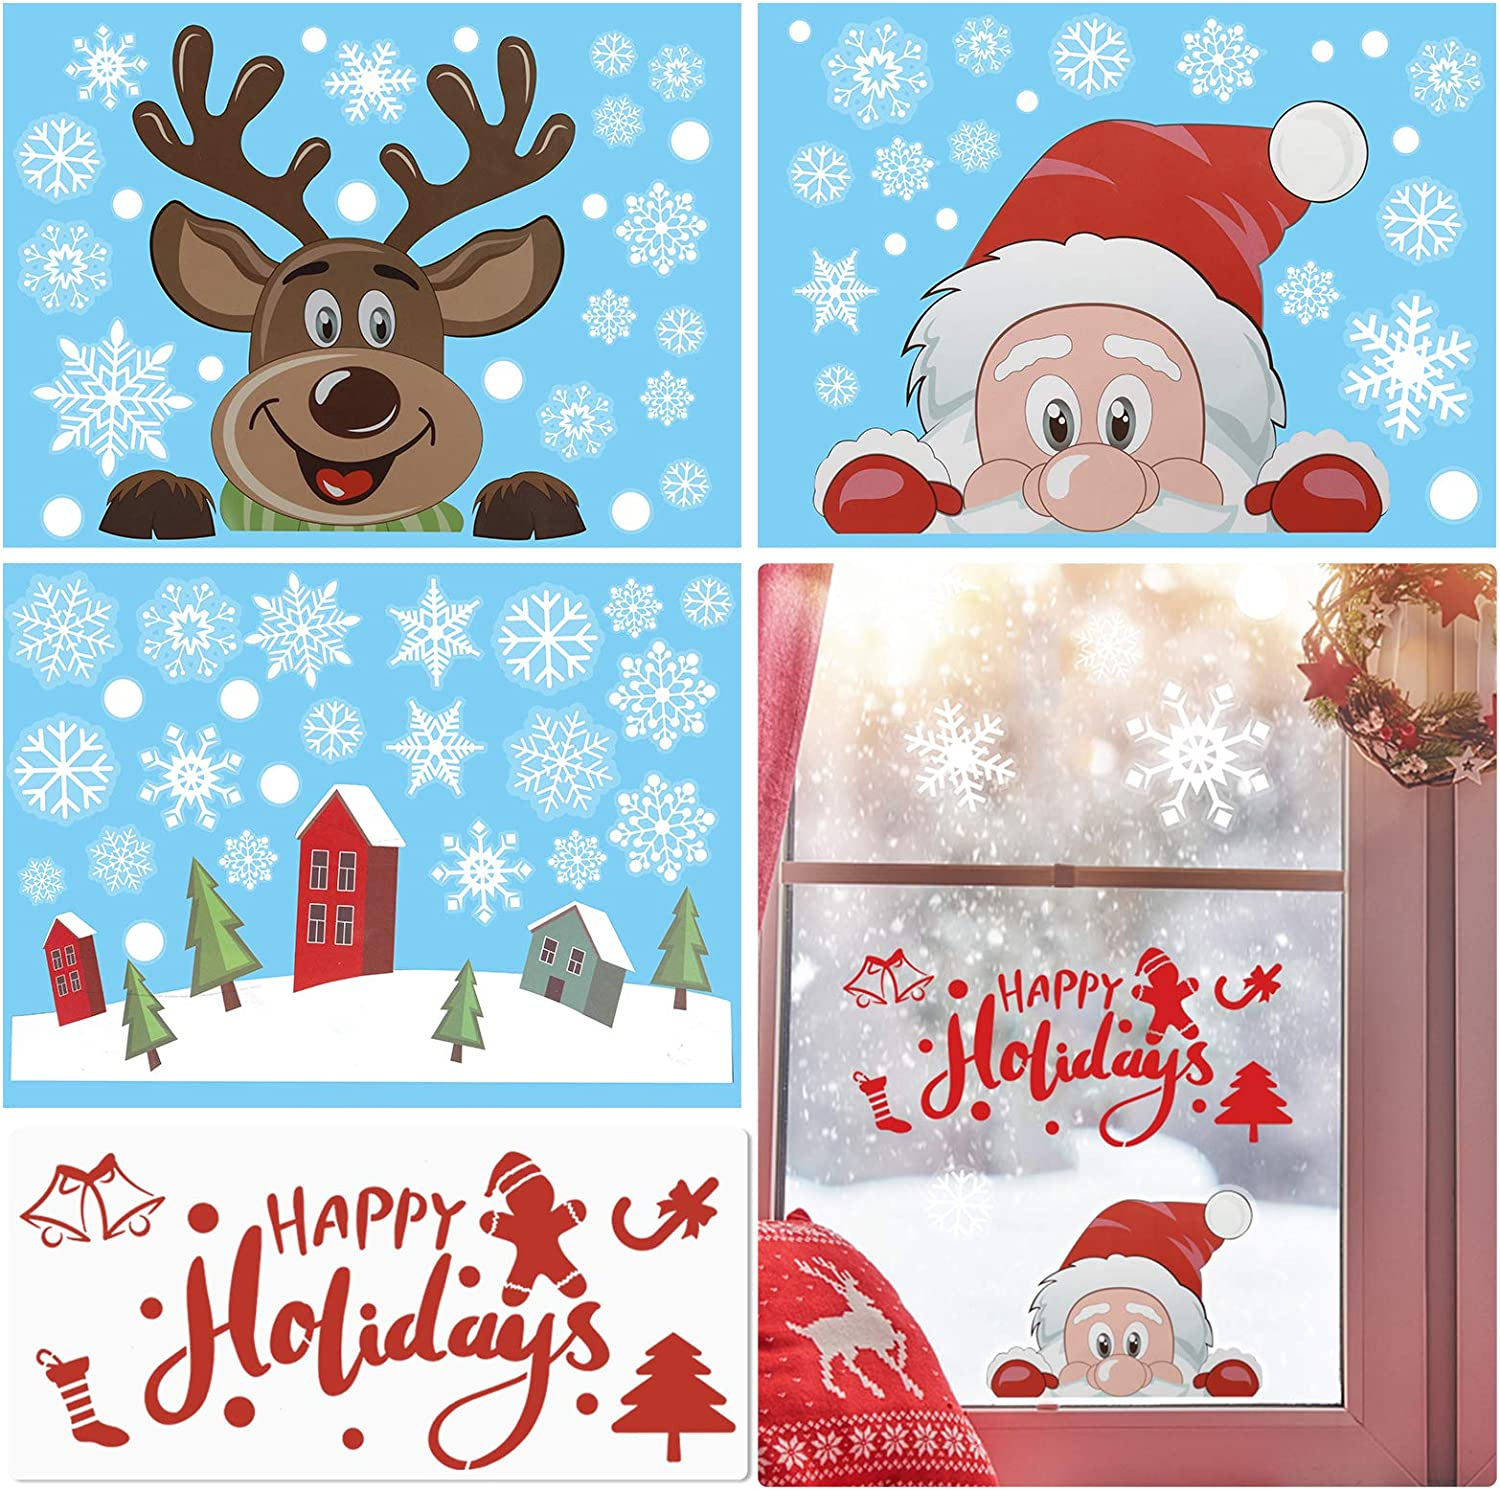 Christmas Sticker Set, Xmas Window Clings Sticker Snowflake Santa Claus Reindeer Happy Holidays Painting Stencils for Window Glass Decorations Home Decals